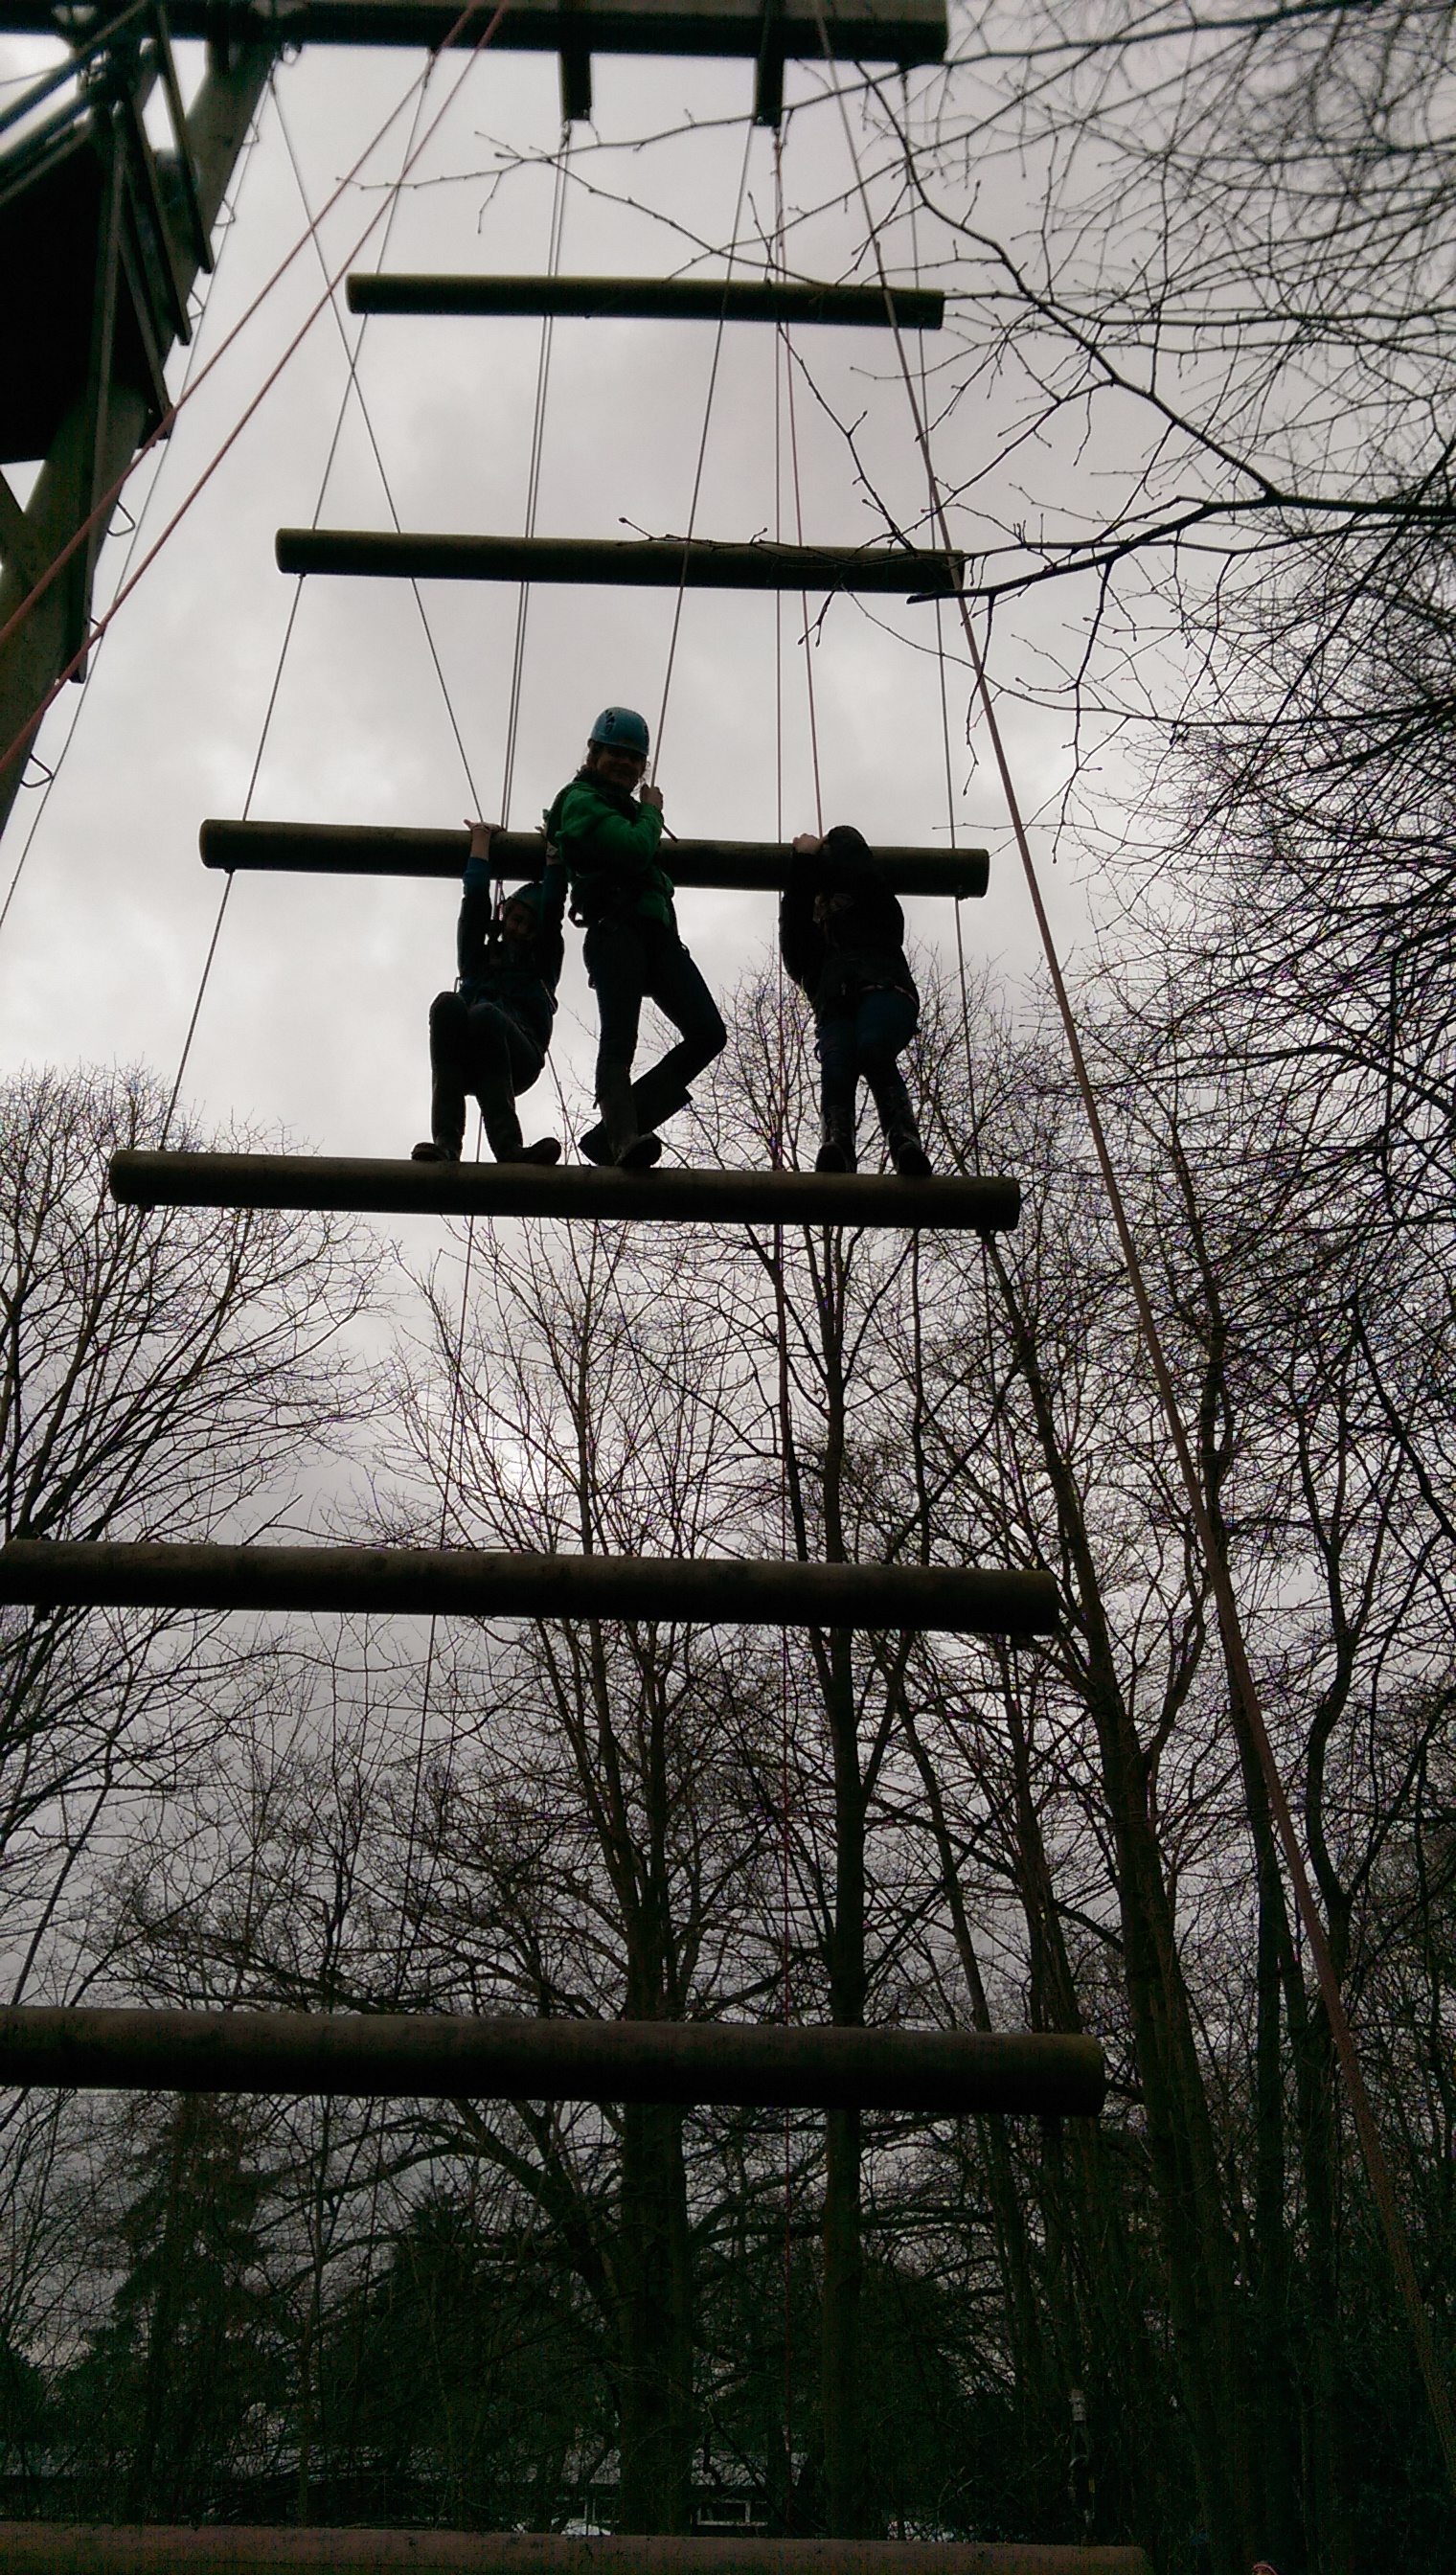 On The High Wires at Wintercamp